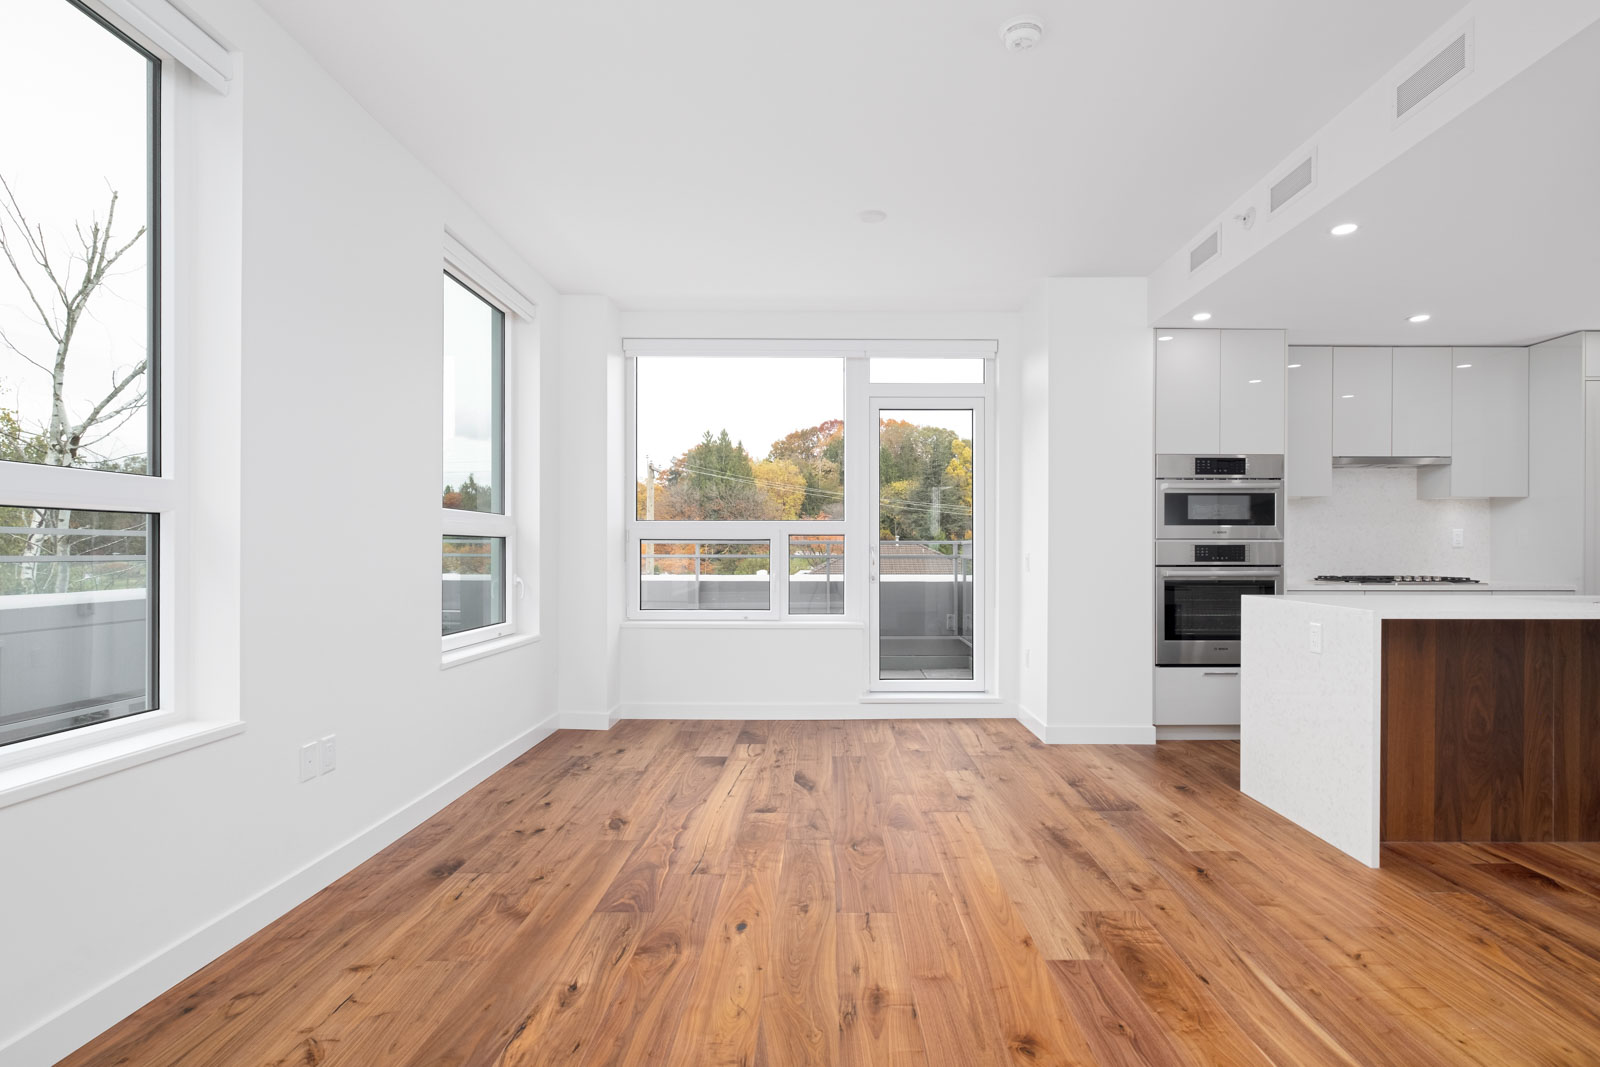 living room with windows and hardwood floors in vancouver westside rental condo managed by birds nest properties